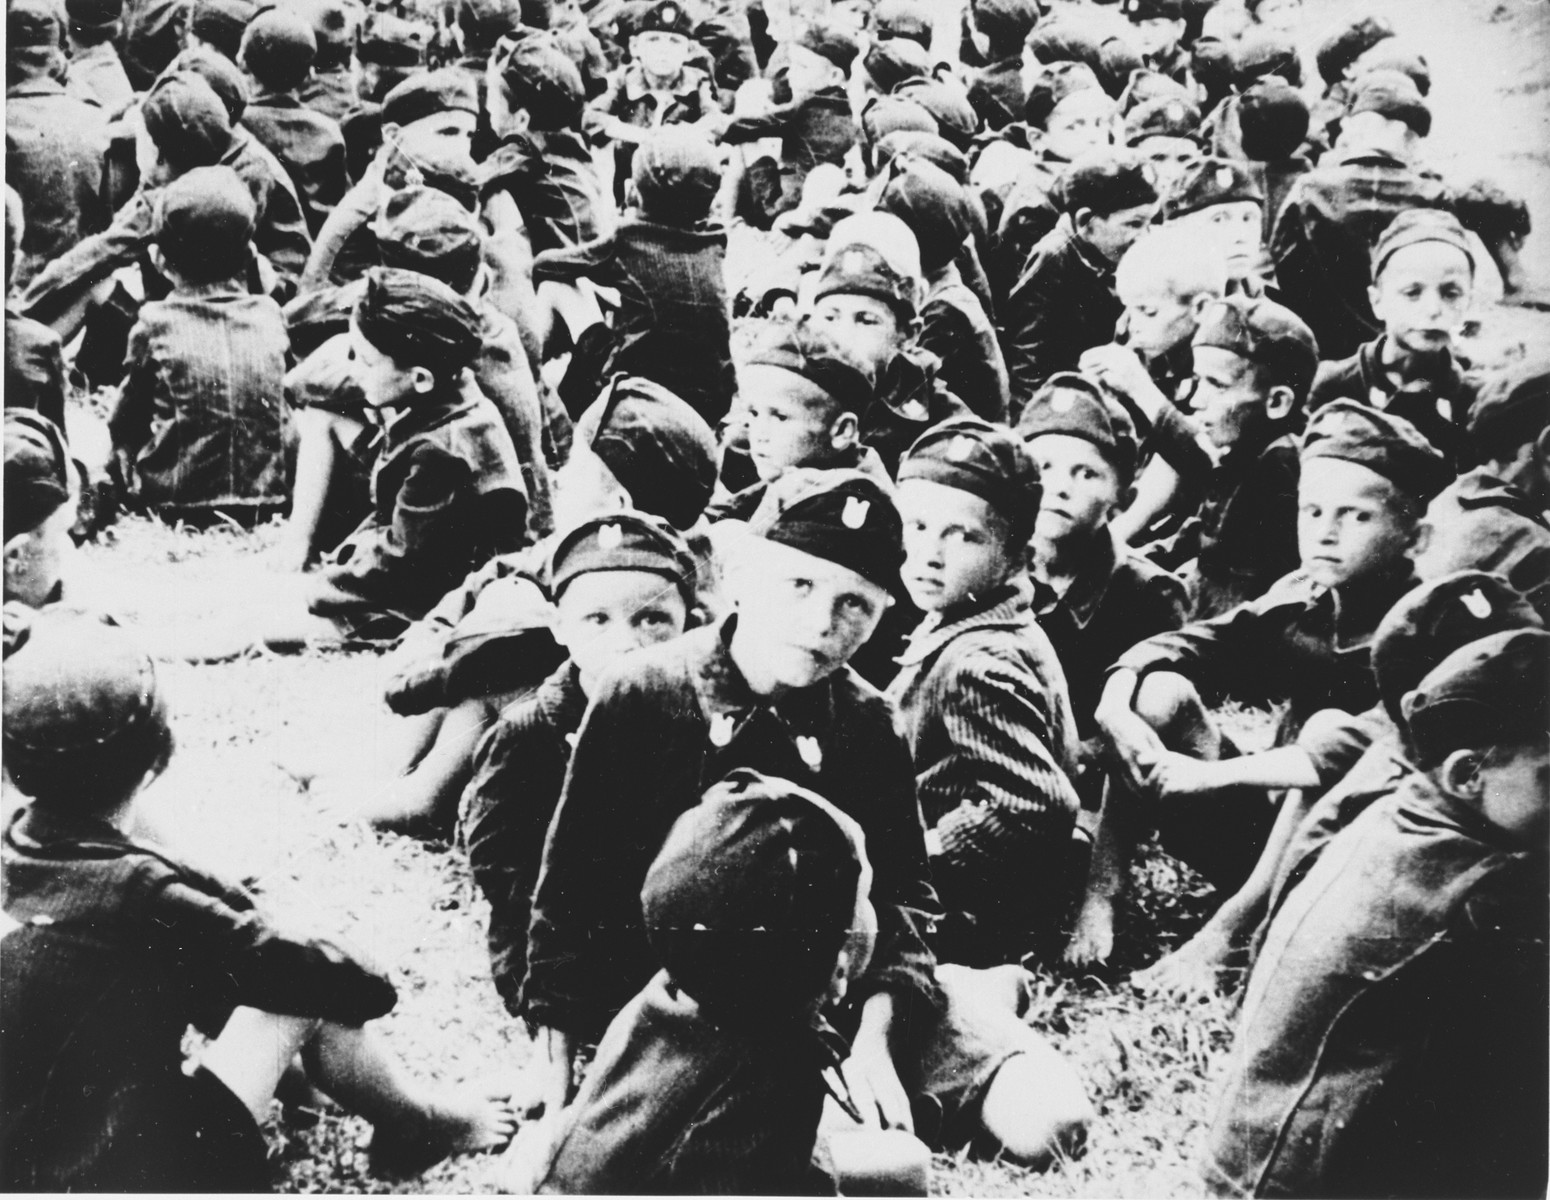 A large group of young Serbian children from the Kozara region who are dressed in Ustasa uniform, are assembled at the Stara Gradiska concentration camp.  The children were called Lubruric's Little Serbs after Maks Lubruric, the commandant of the Jasenovac concentration camp.  Dressing the imprisoned children in Ustasa uniforms was part of the Croatian regime's effort to reeducate the Serbian boys from the Kozara region.